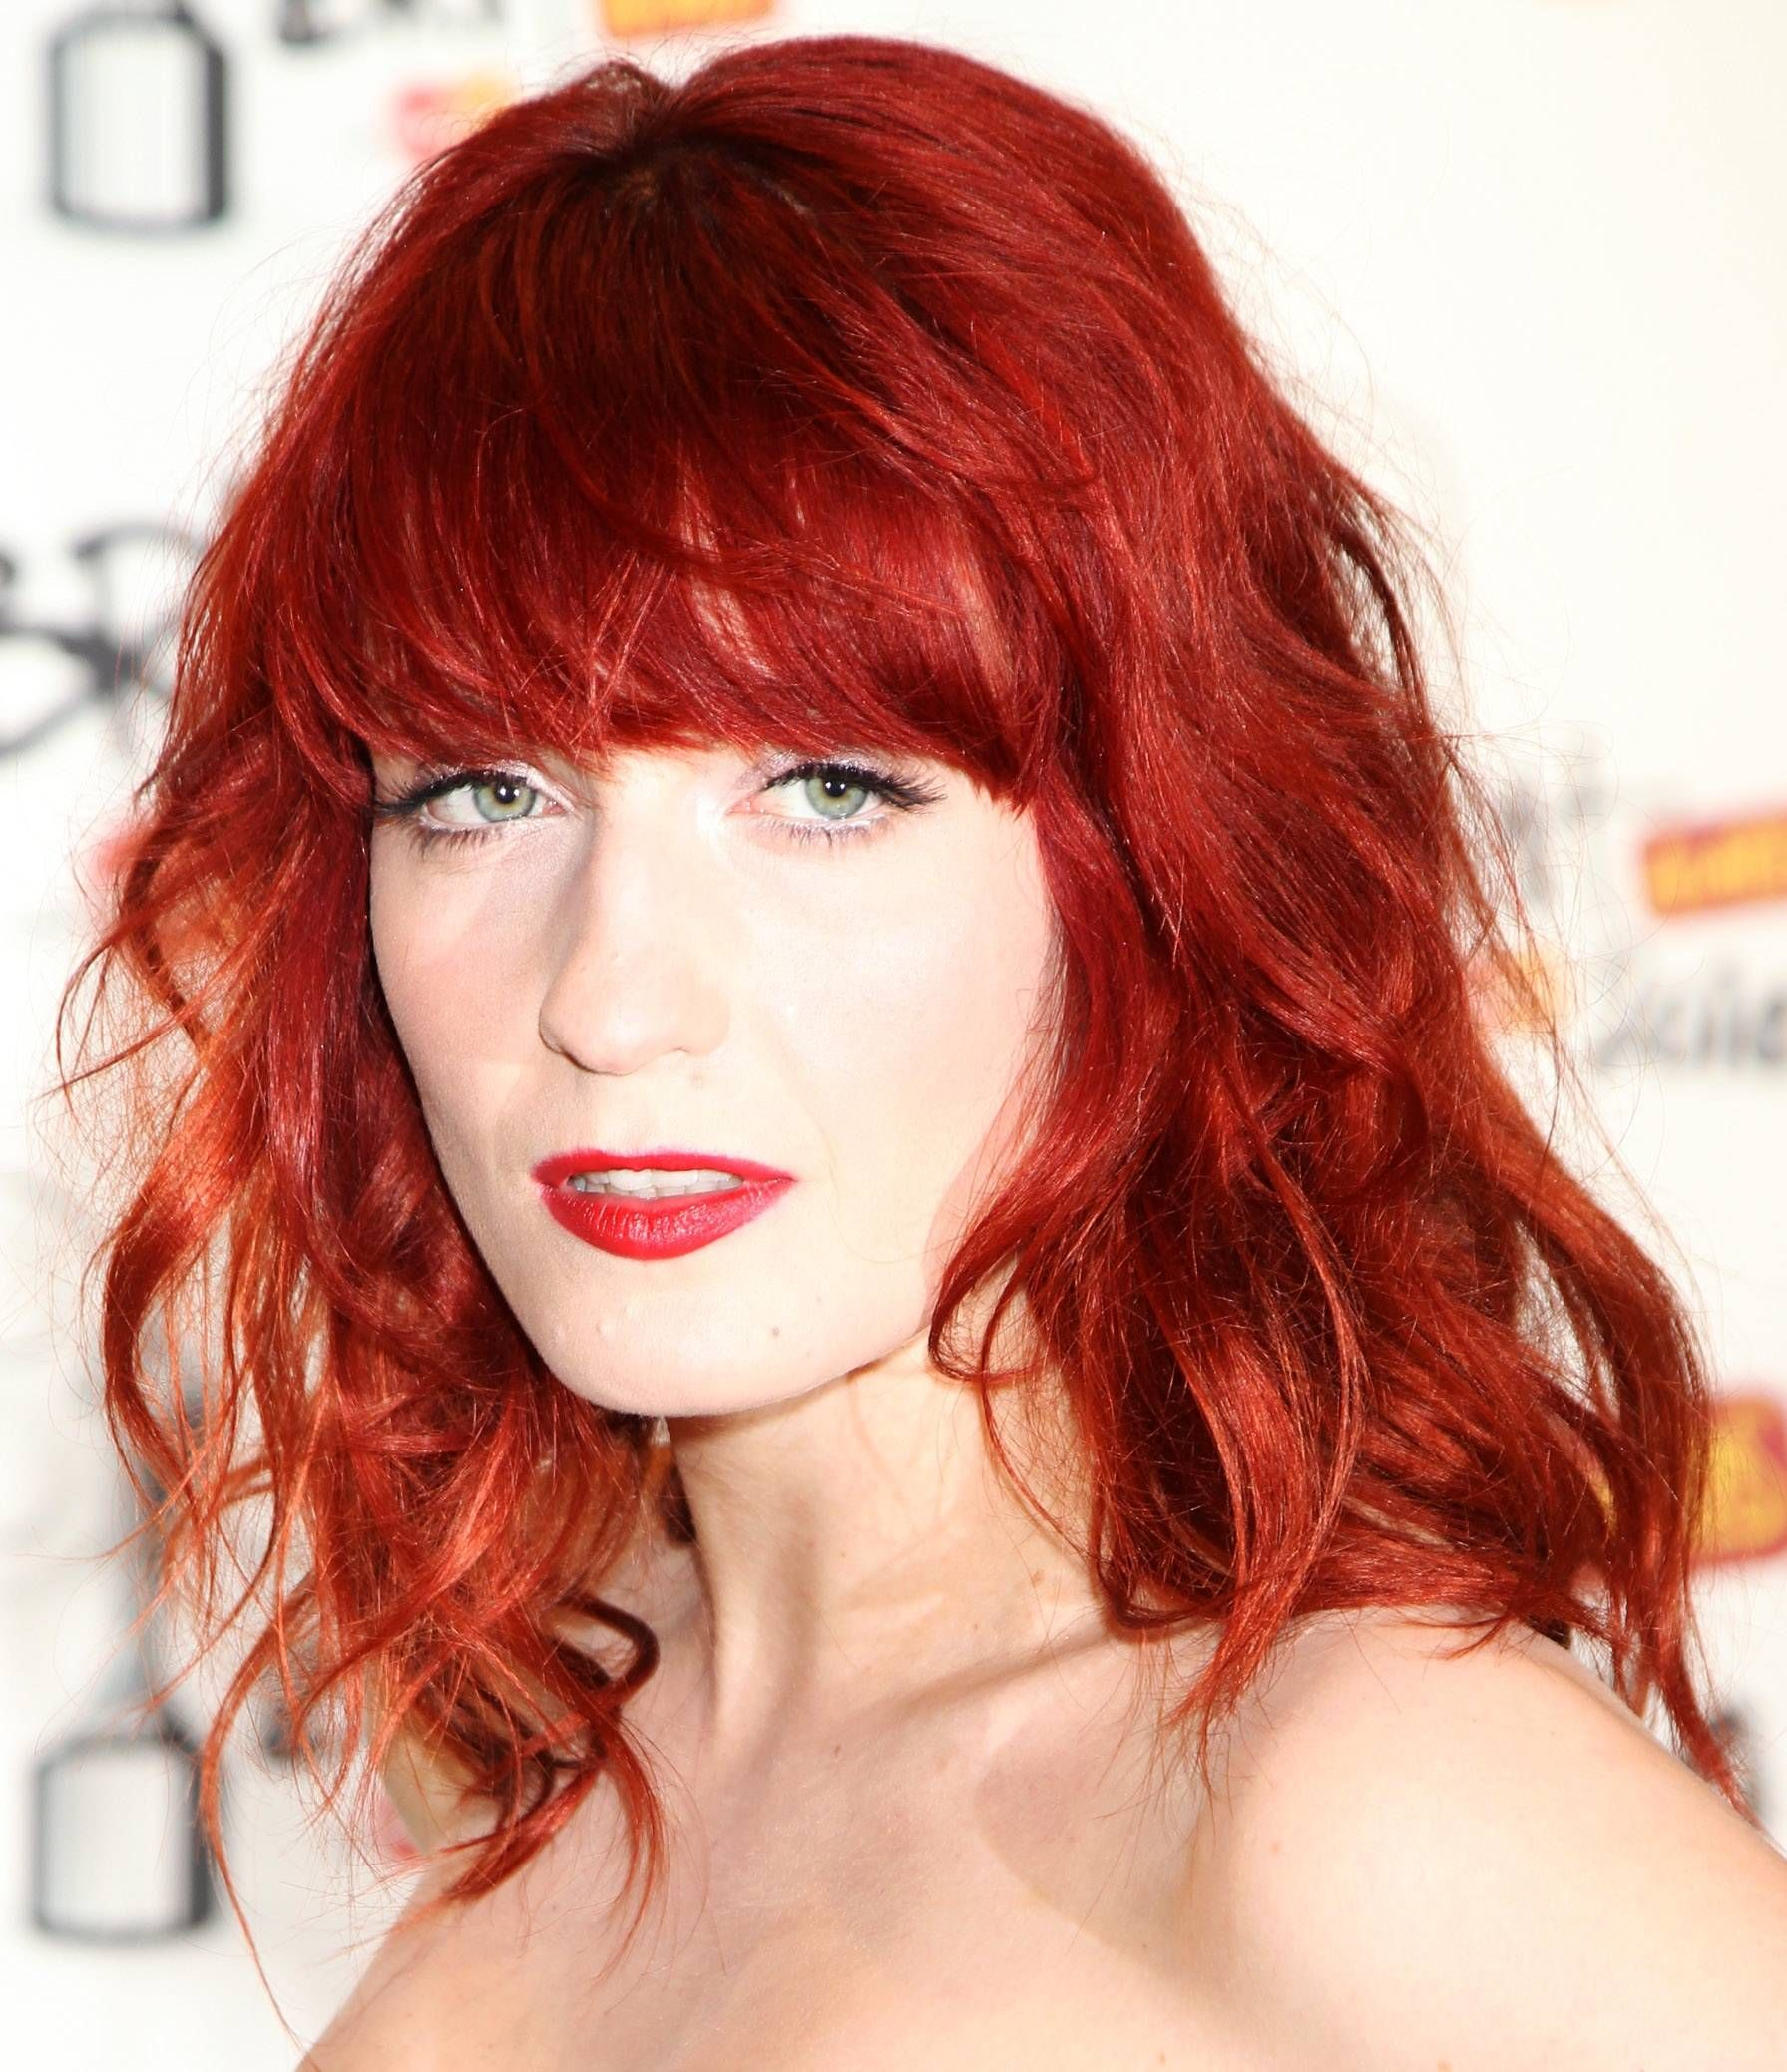 Florence Welch  Redheads  Pinterest  Florence Florence welch and